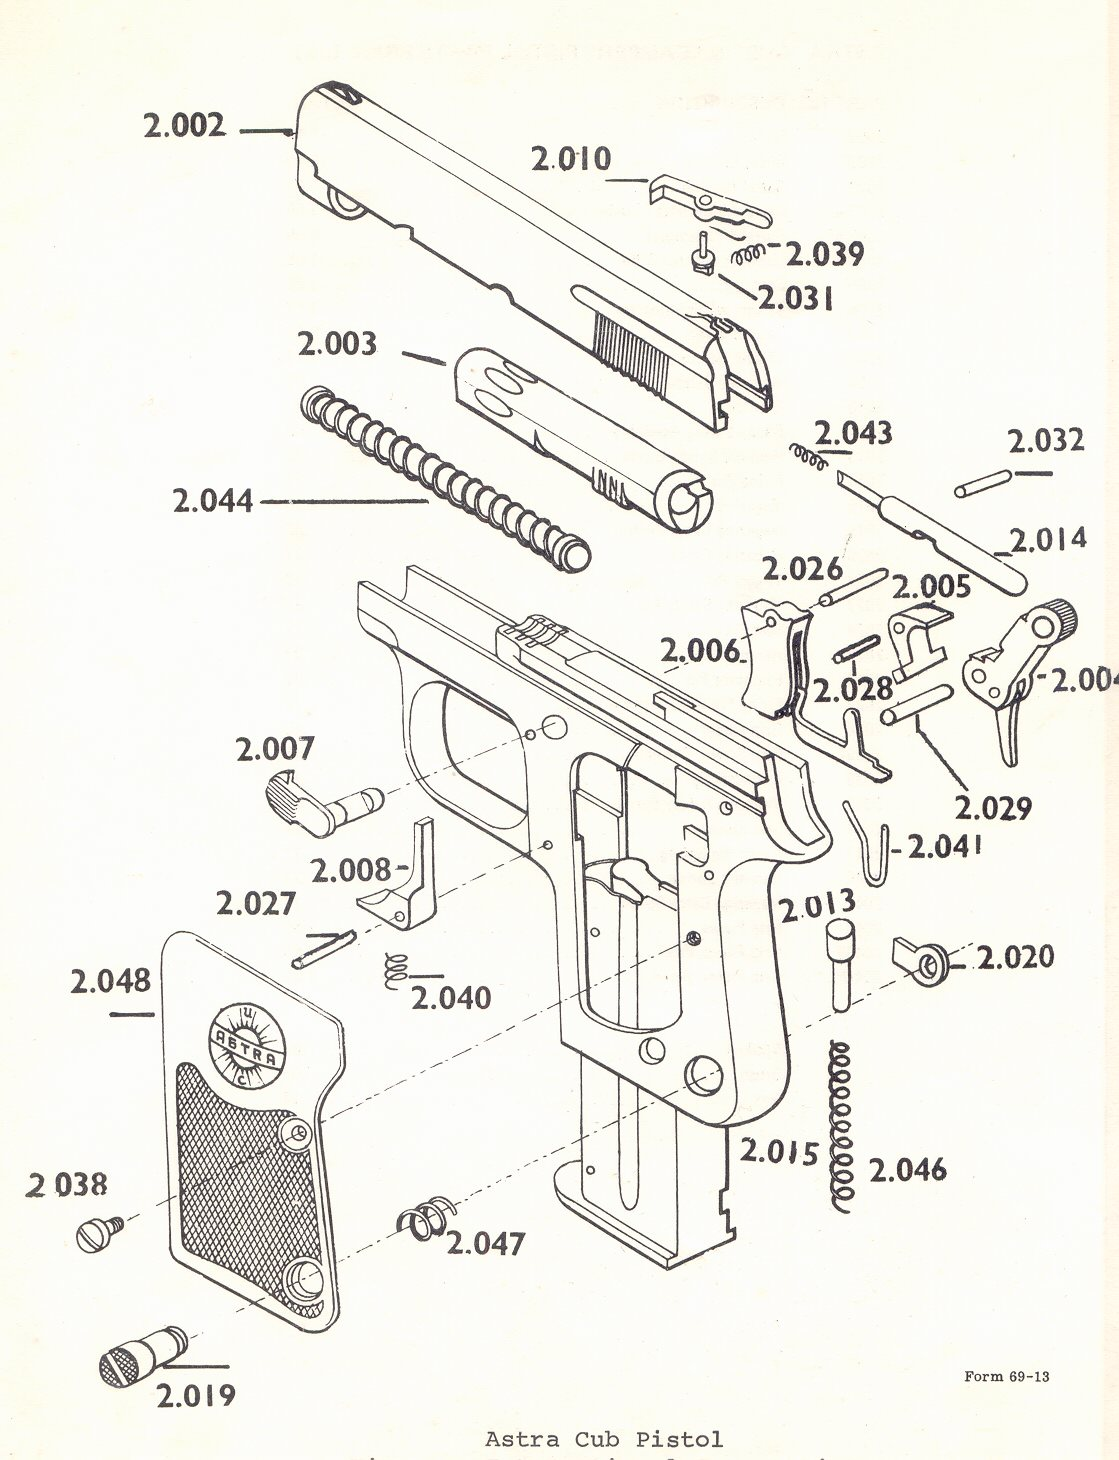 Colt 1911 Assembly Instructions